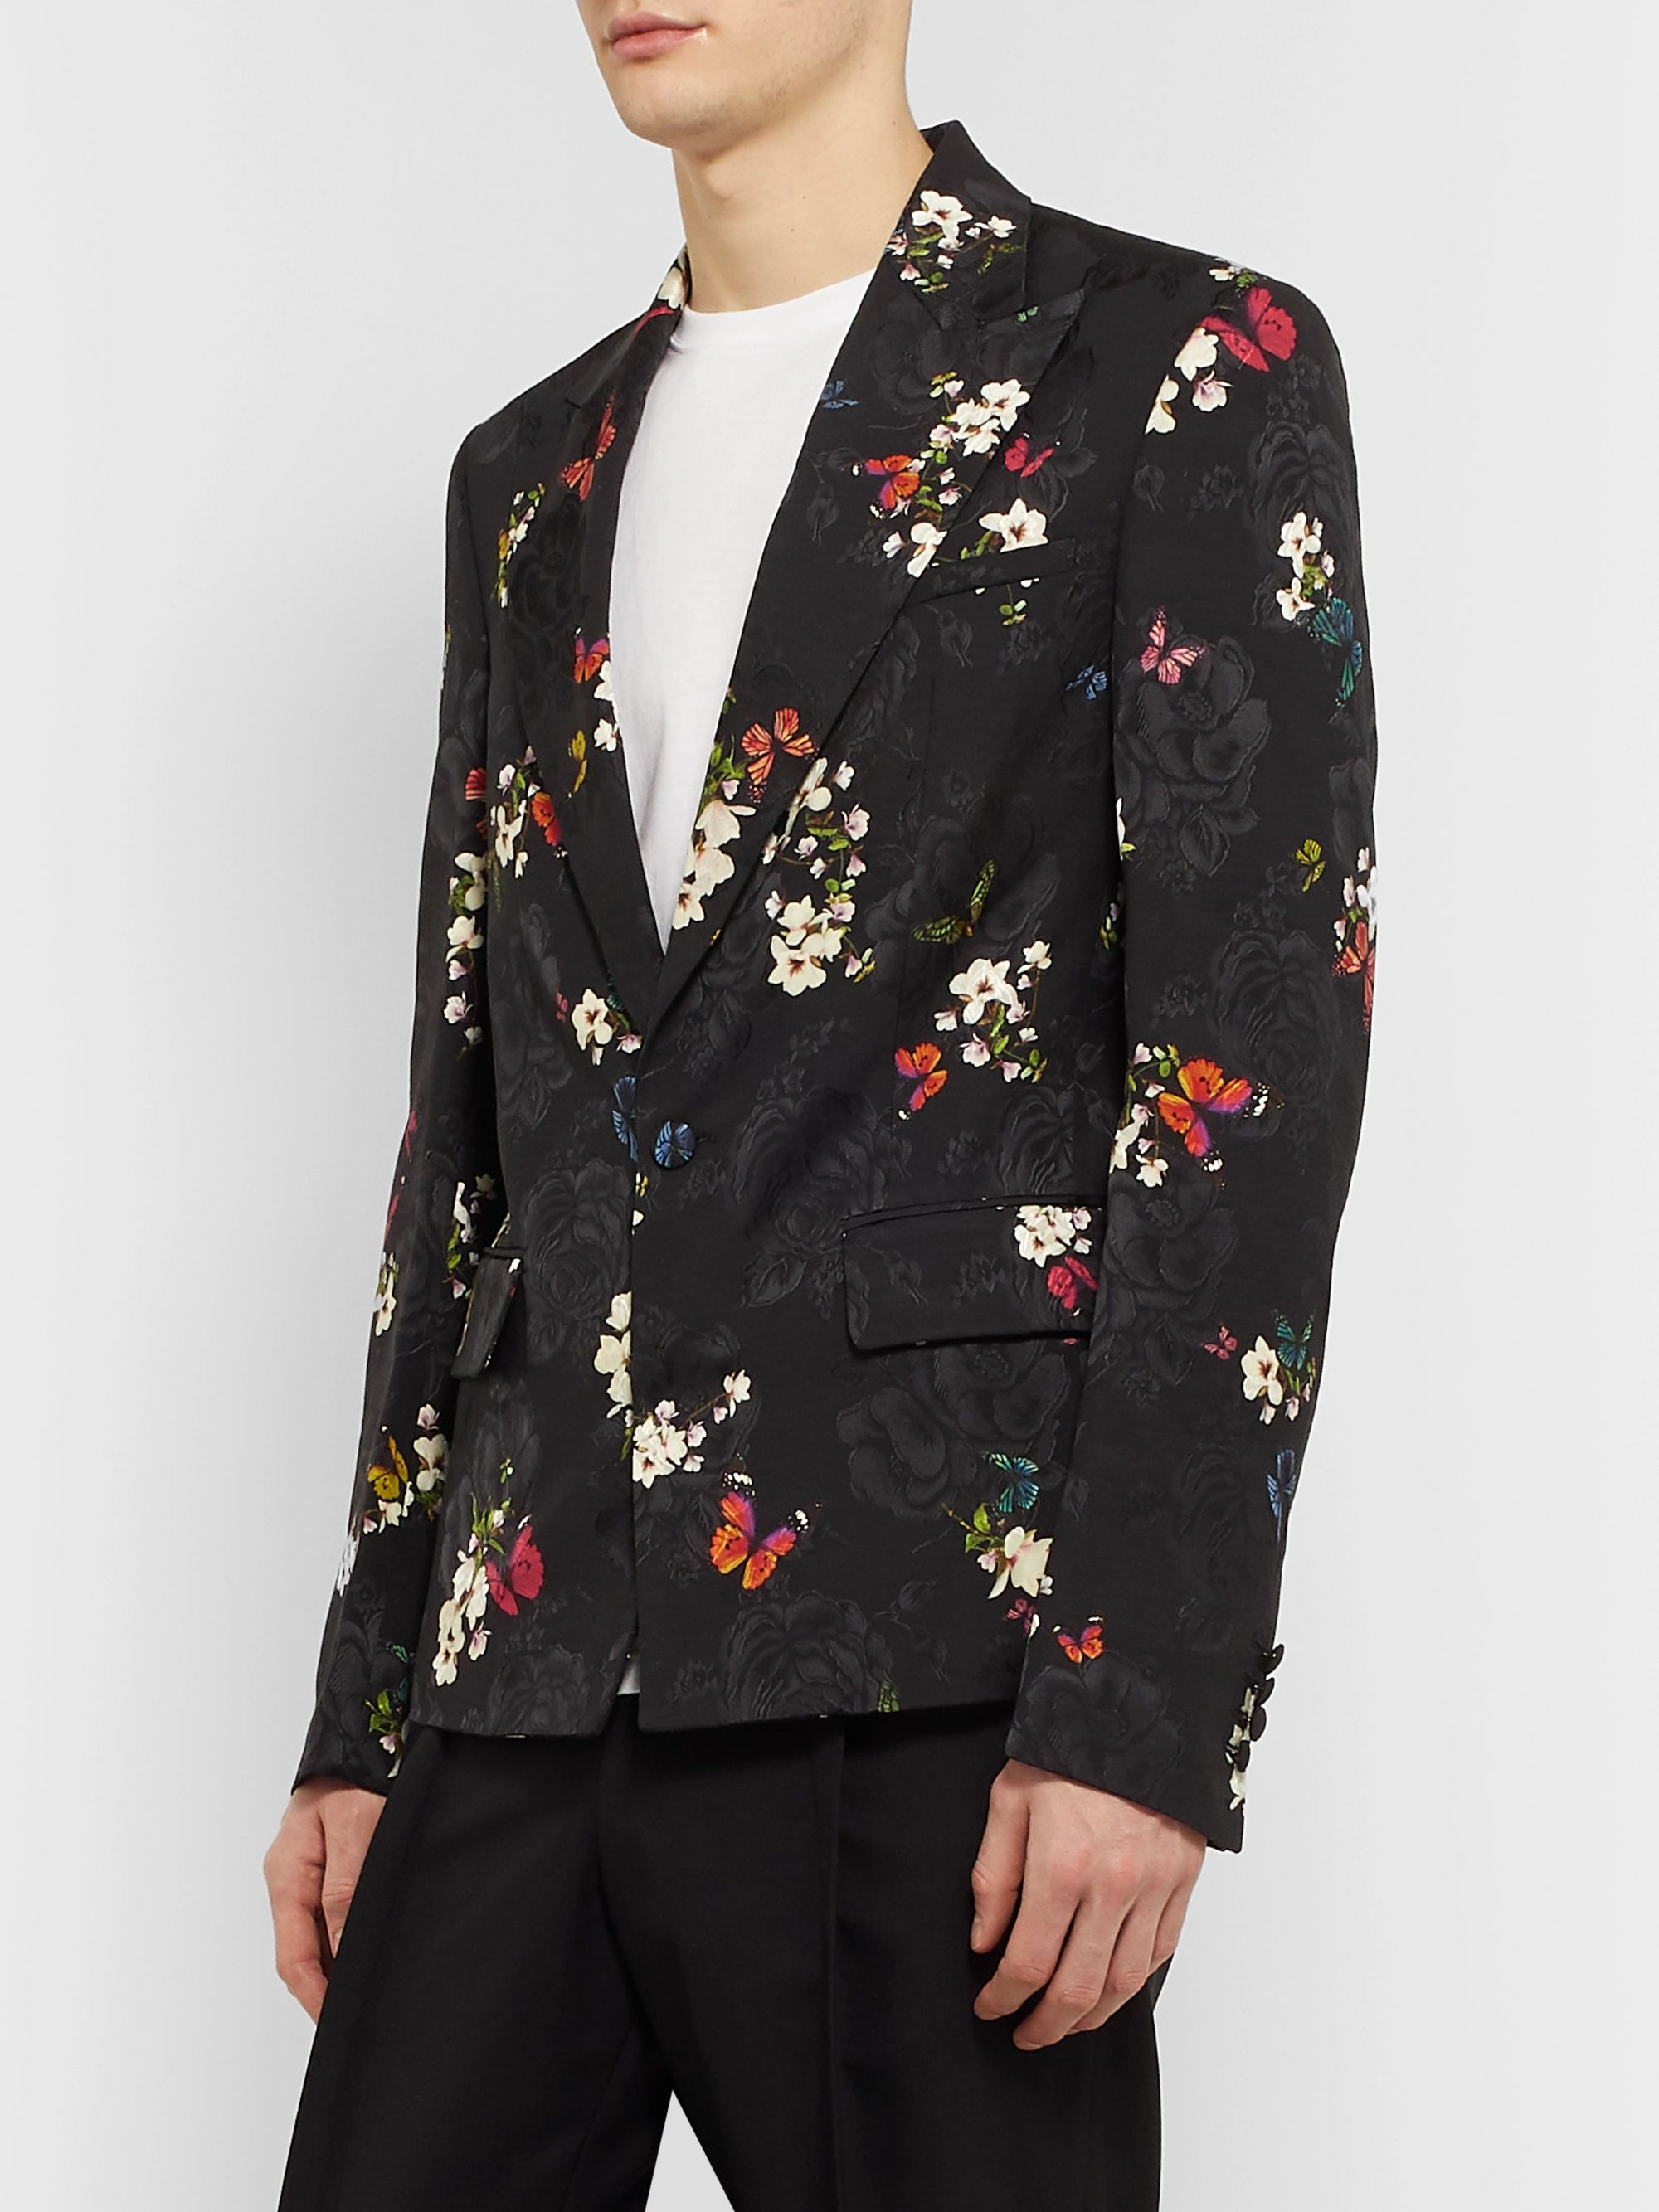 AMIRI Black Slim-Fit Printed Floral-Jacquard Suit Jacket